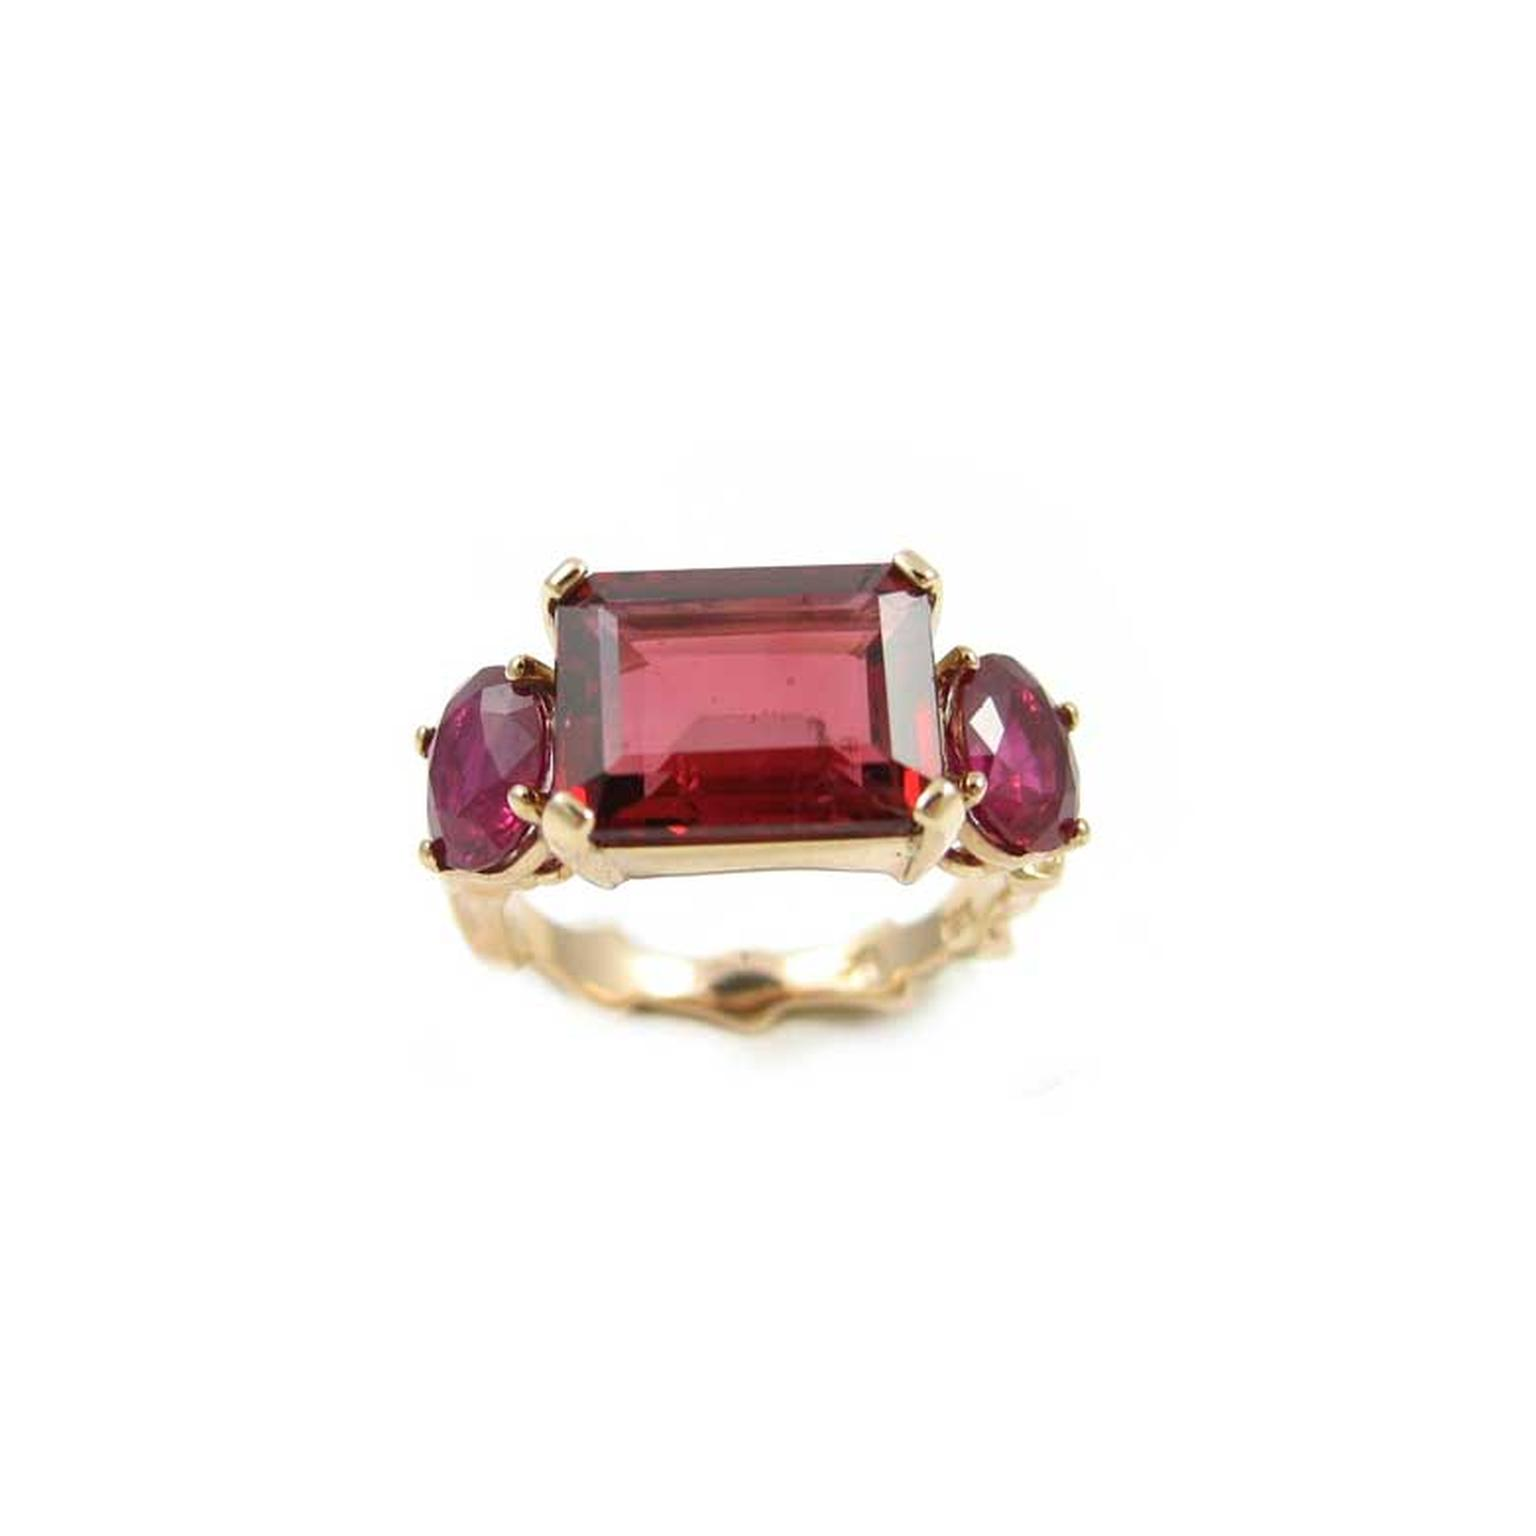 K Brunini red spinel engagement ring